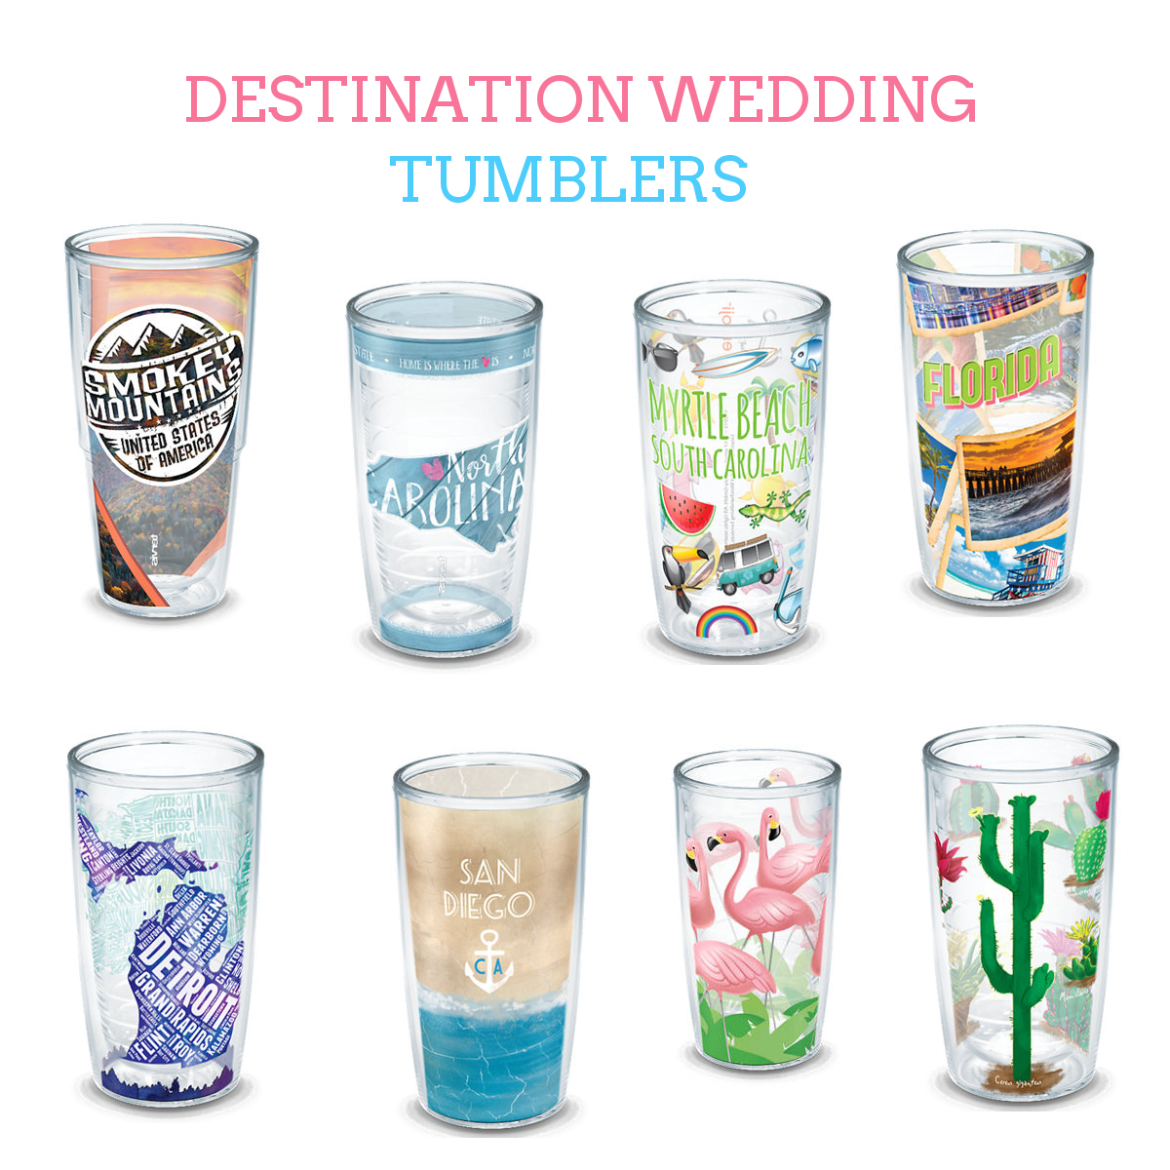 personalized tumblers for bridesmaids, groomsmen, wedding party